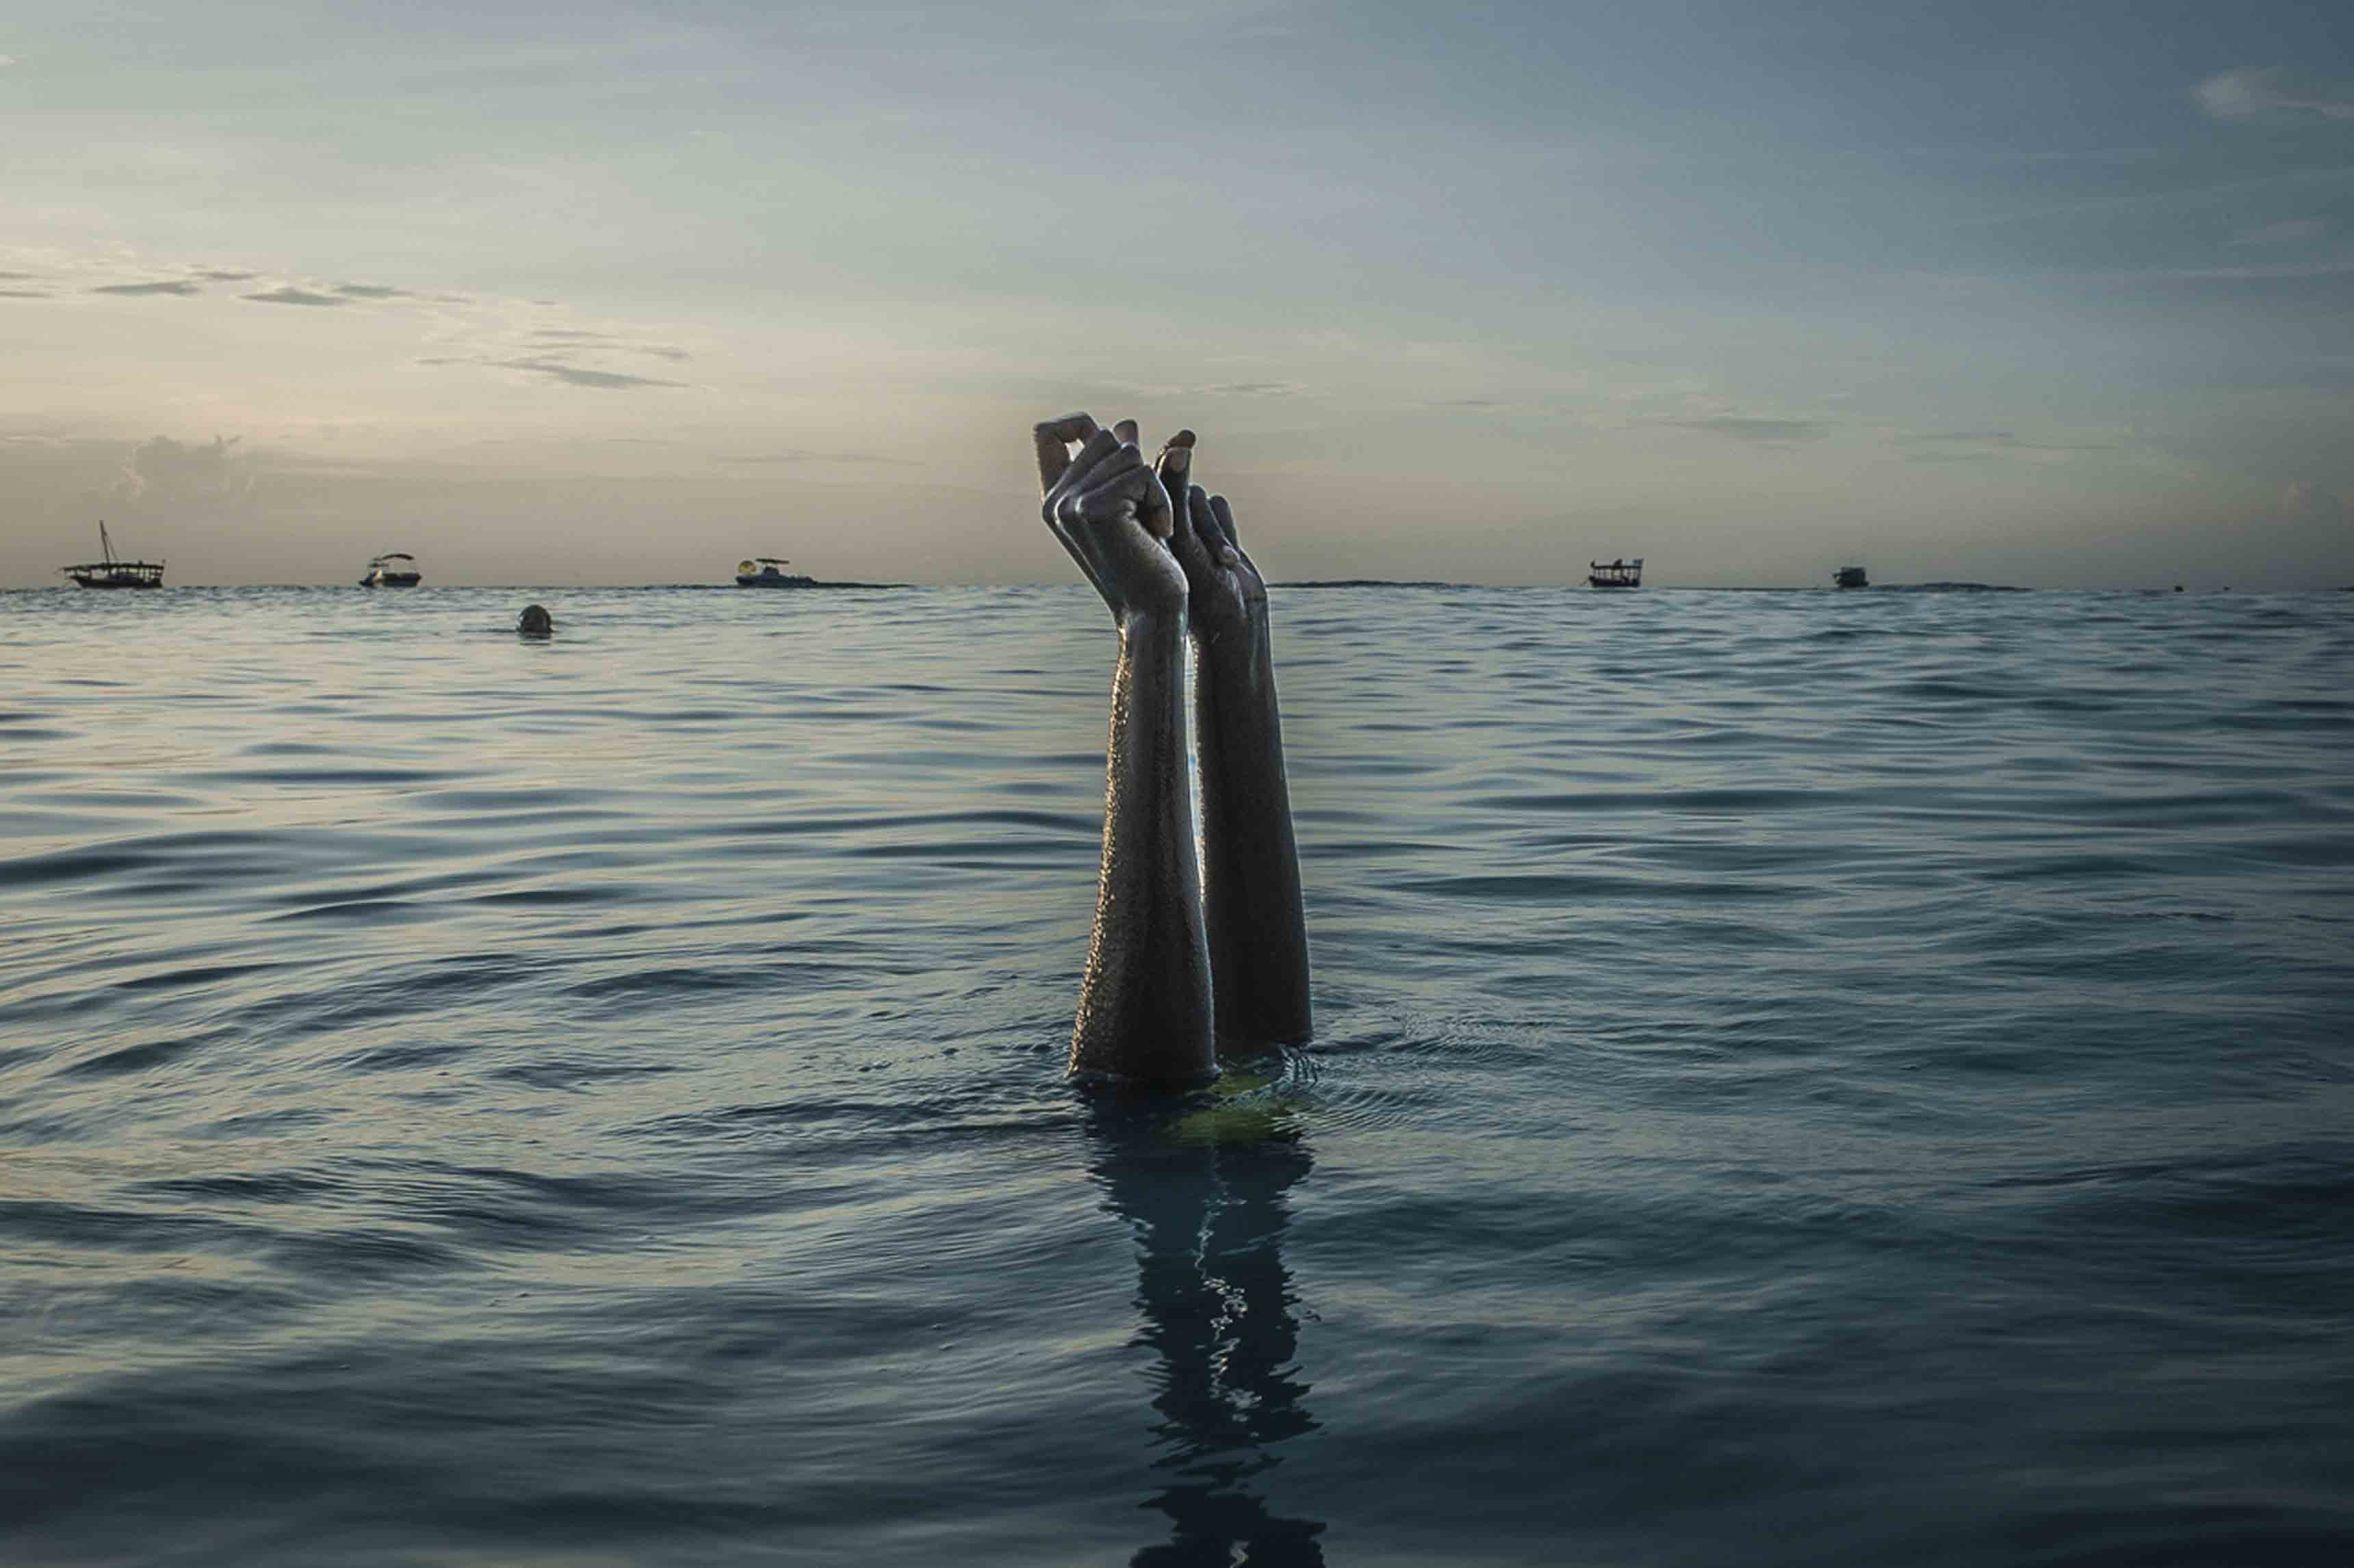 """Anna Boyiazis, """"Finding Freedom in the Water"""", 2016"""